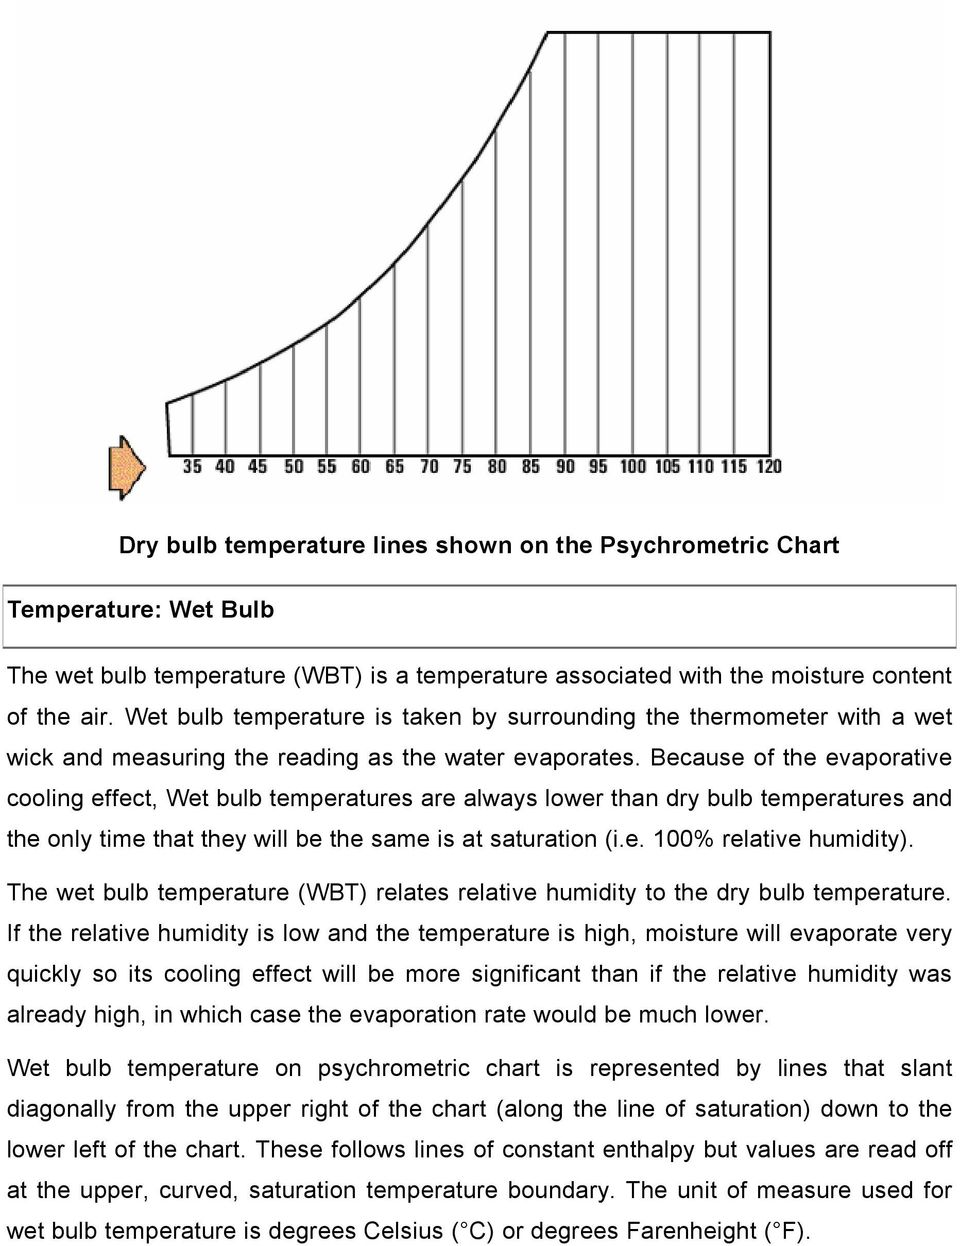 Because of the evaporative cooling effect, Wet bulb temperatures are always lower than dry bulb temperatures and the only time that they will be the same is at saturation (i.e. 100% relative humidity).